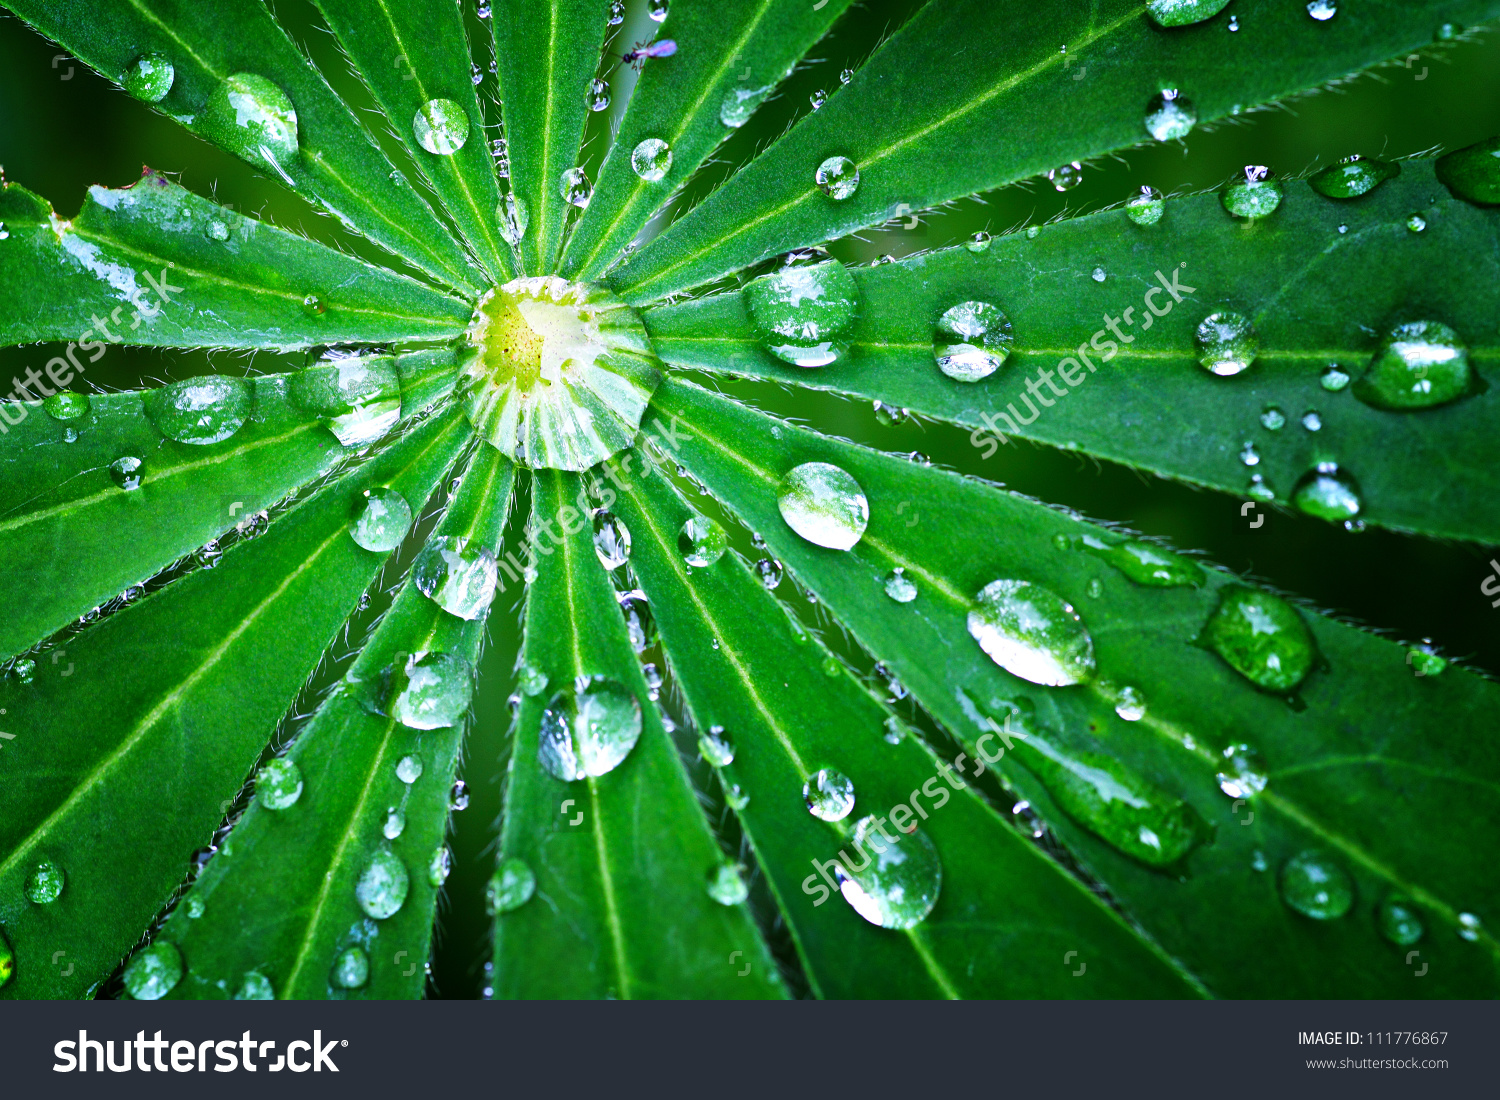 Droplet Of Dew On A Green Leaf Closeup Shot Stock Photo 111776867.